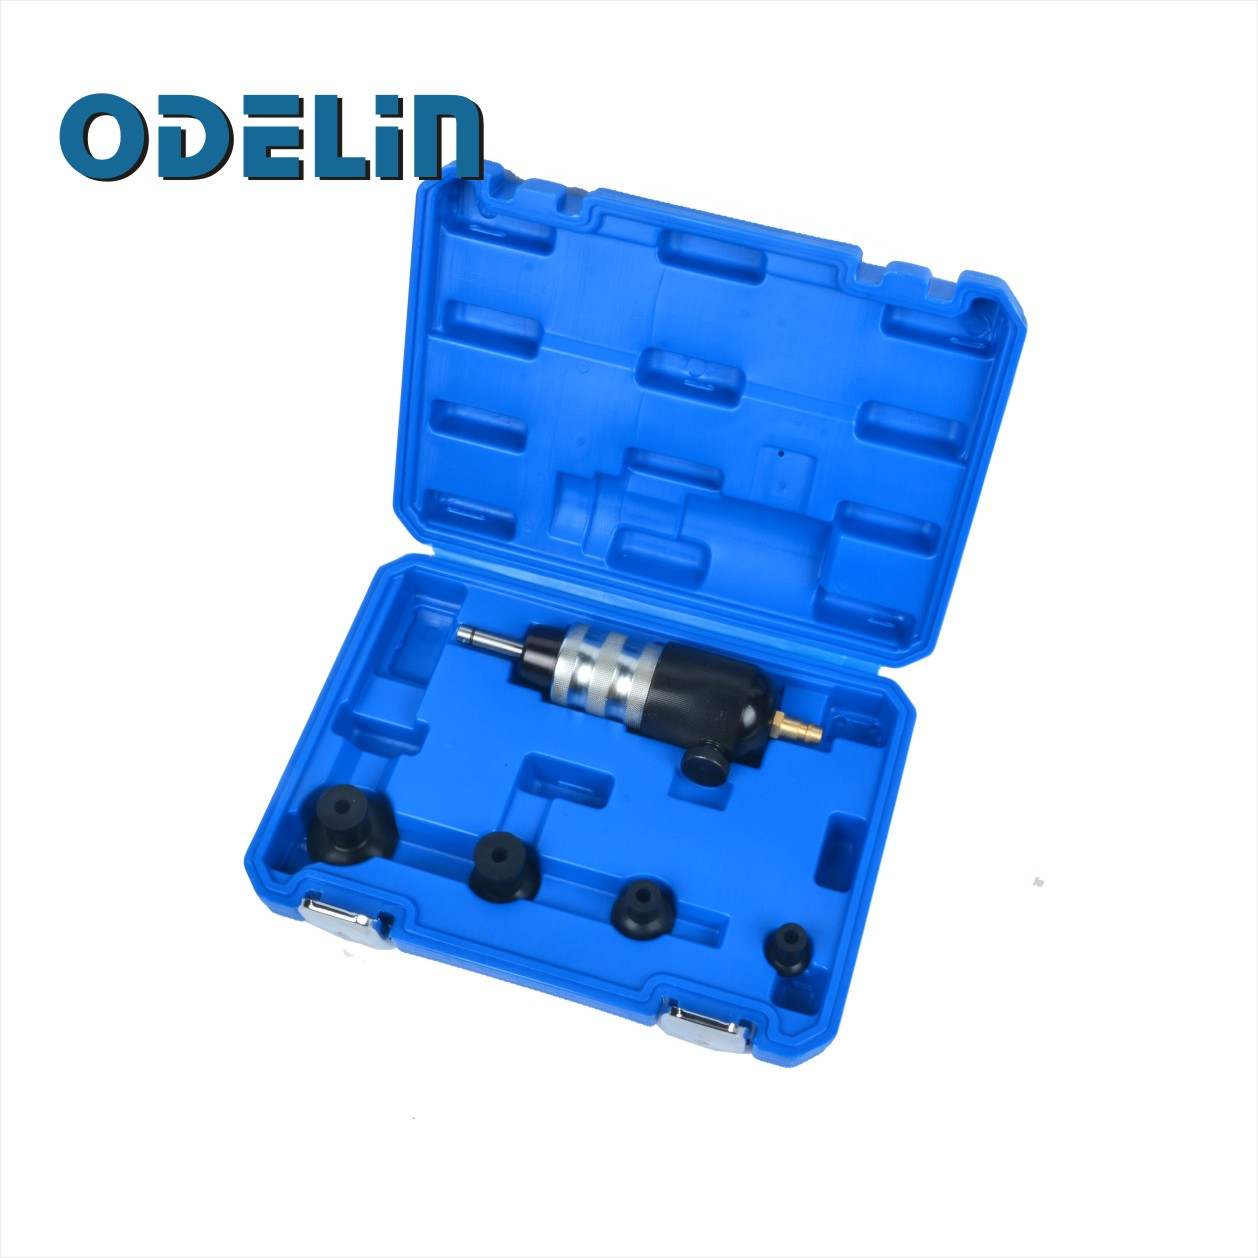 Air Operated Valve Lapping Grinding Tool Spin Valves Pneumatic Machine-in Engine Care from Automobiles & Motorcycles    1